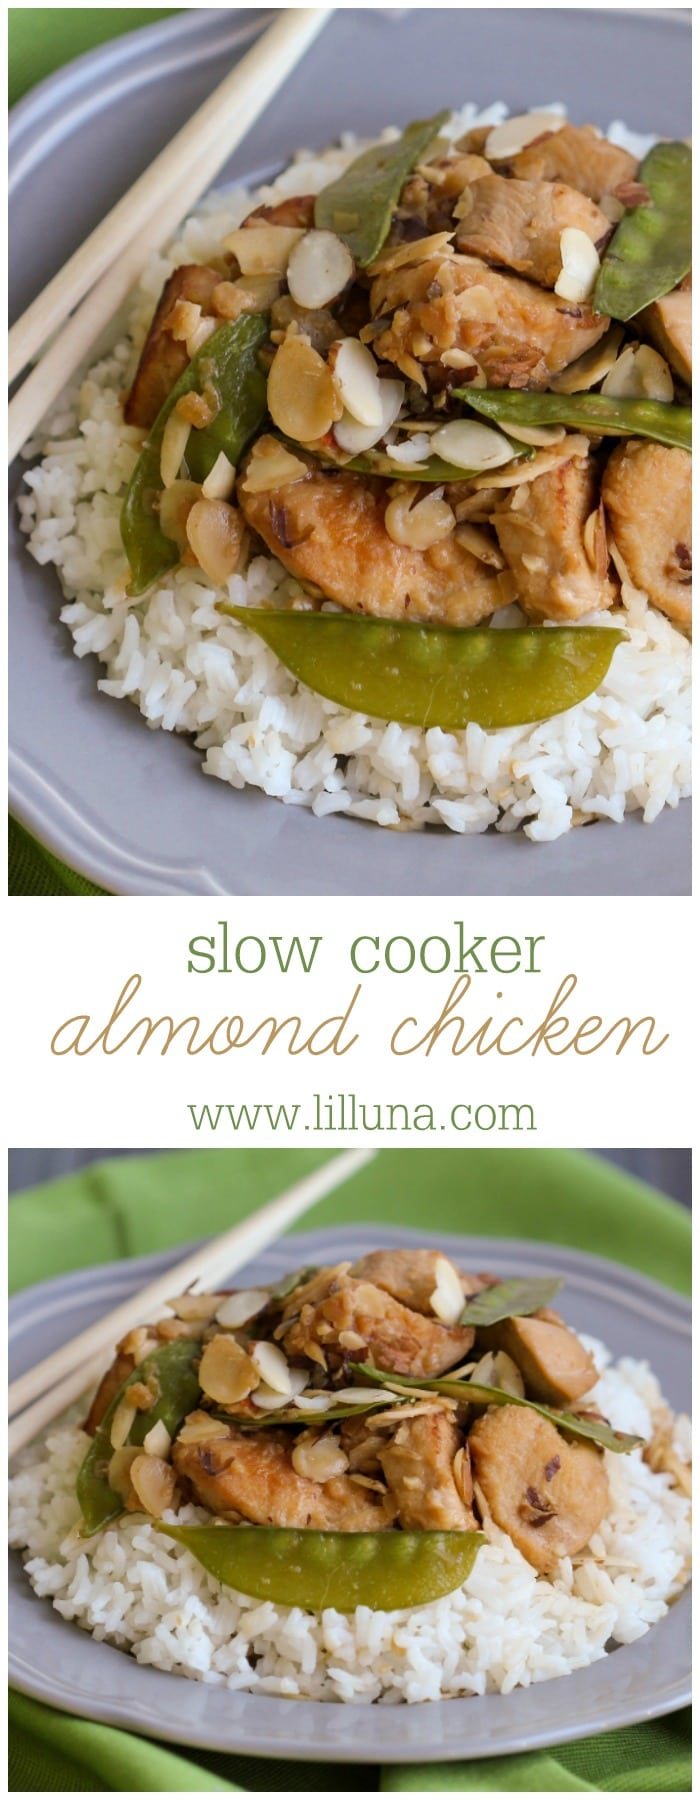 Slow Cooker Almond Chicken - one of the easiest and yummiest dinner recipes you can make in the crock pot!